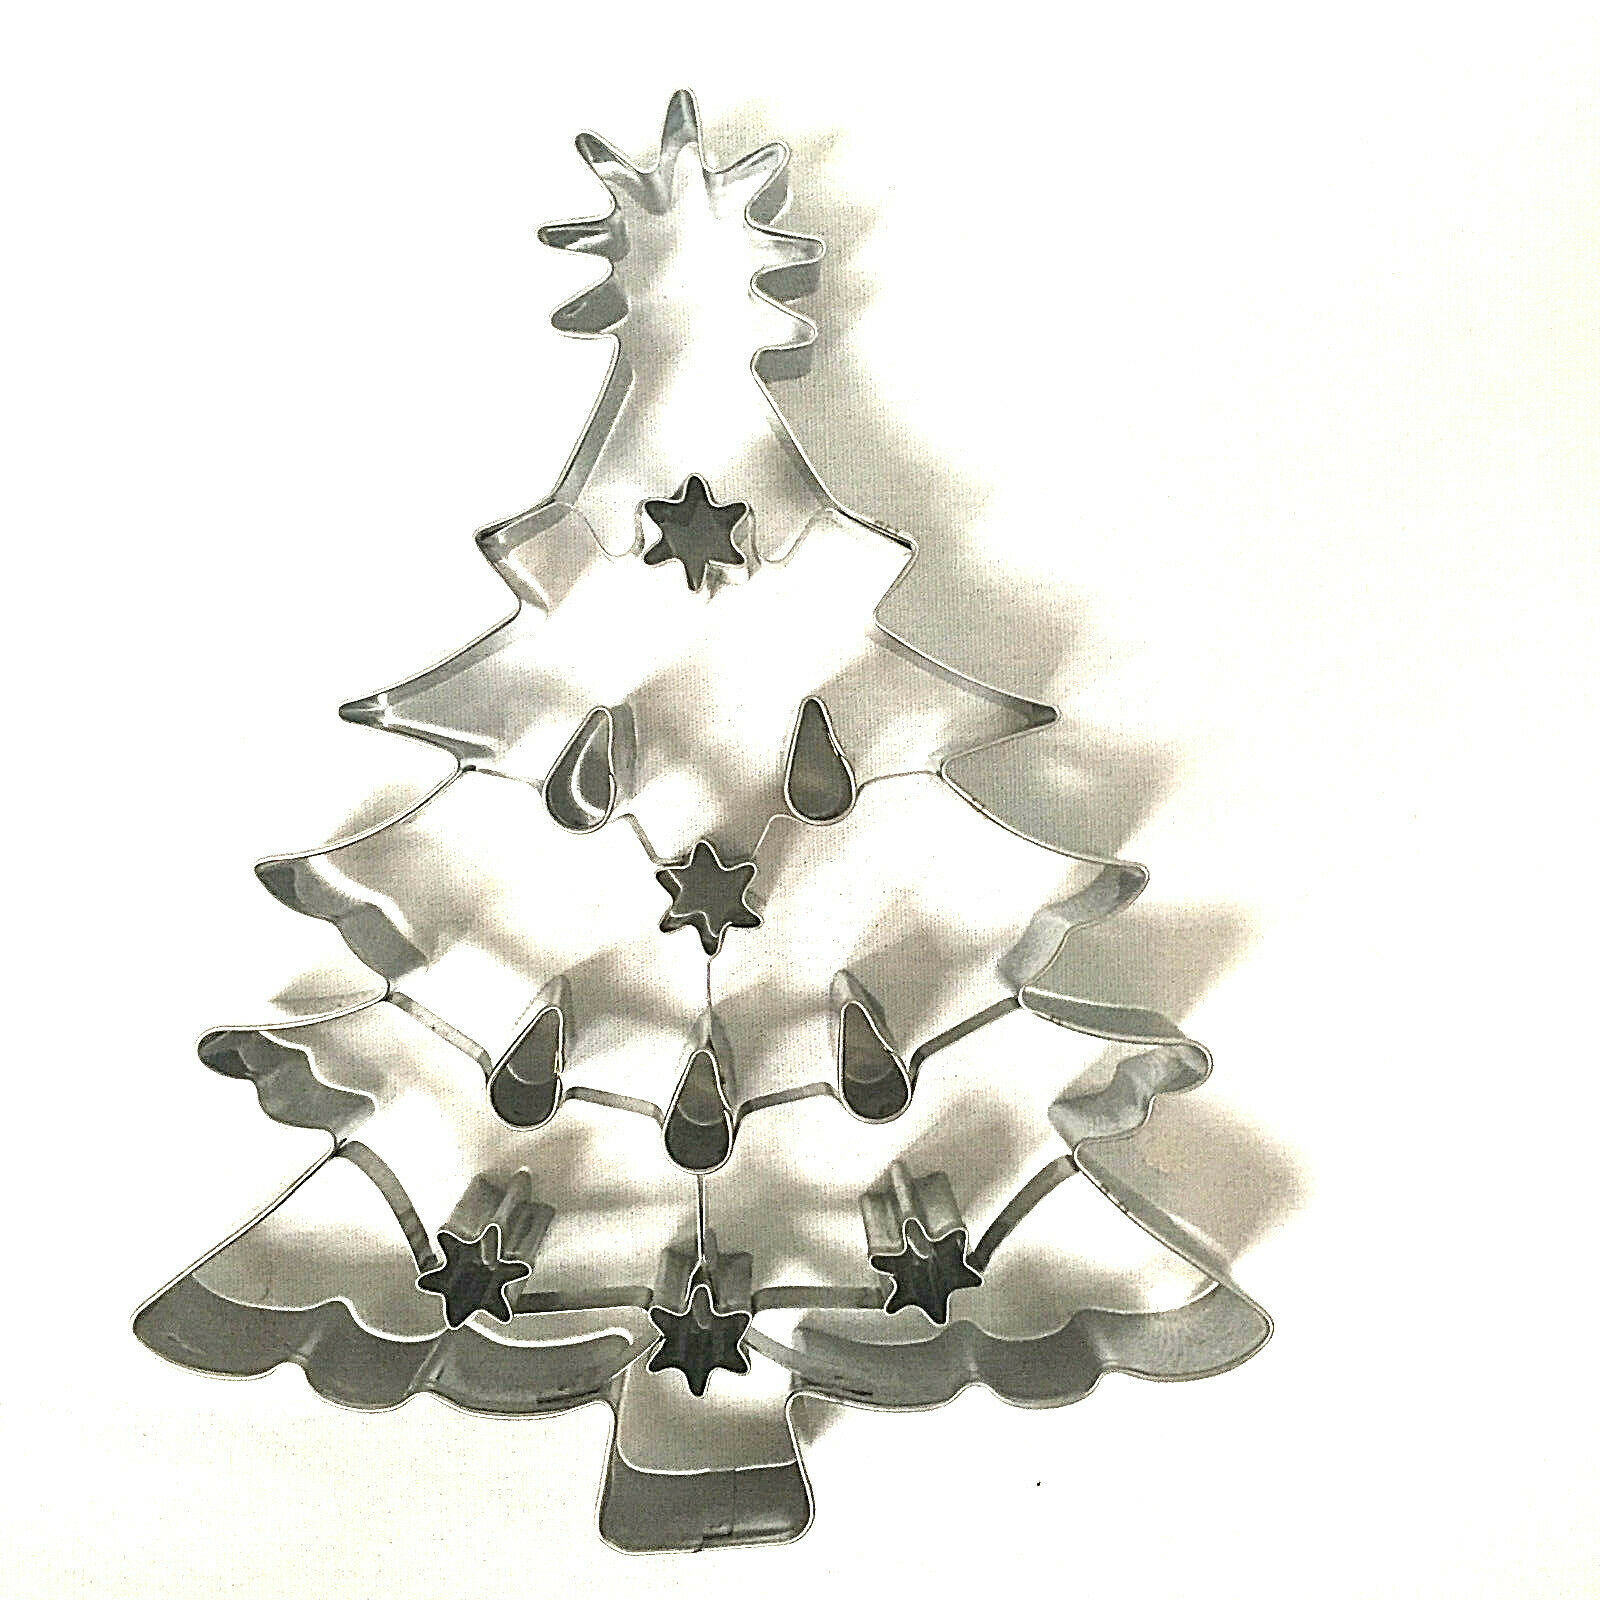 Christmas Tree Cookie Cutter Williams Sonoma Large Alunimum 8 Inches image 3